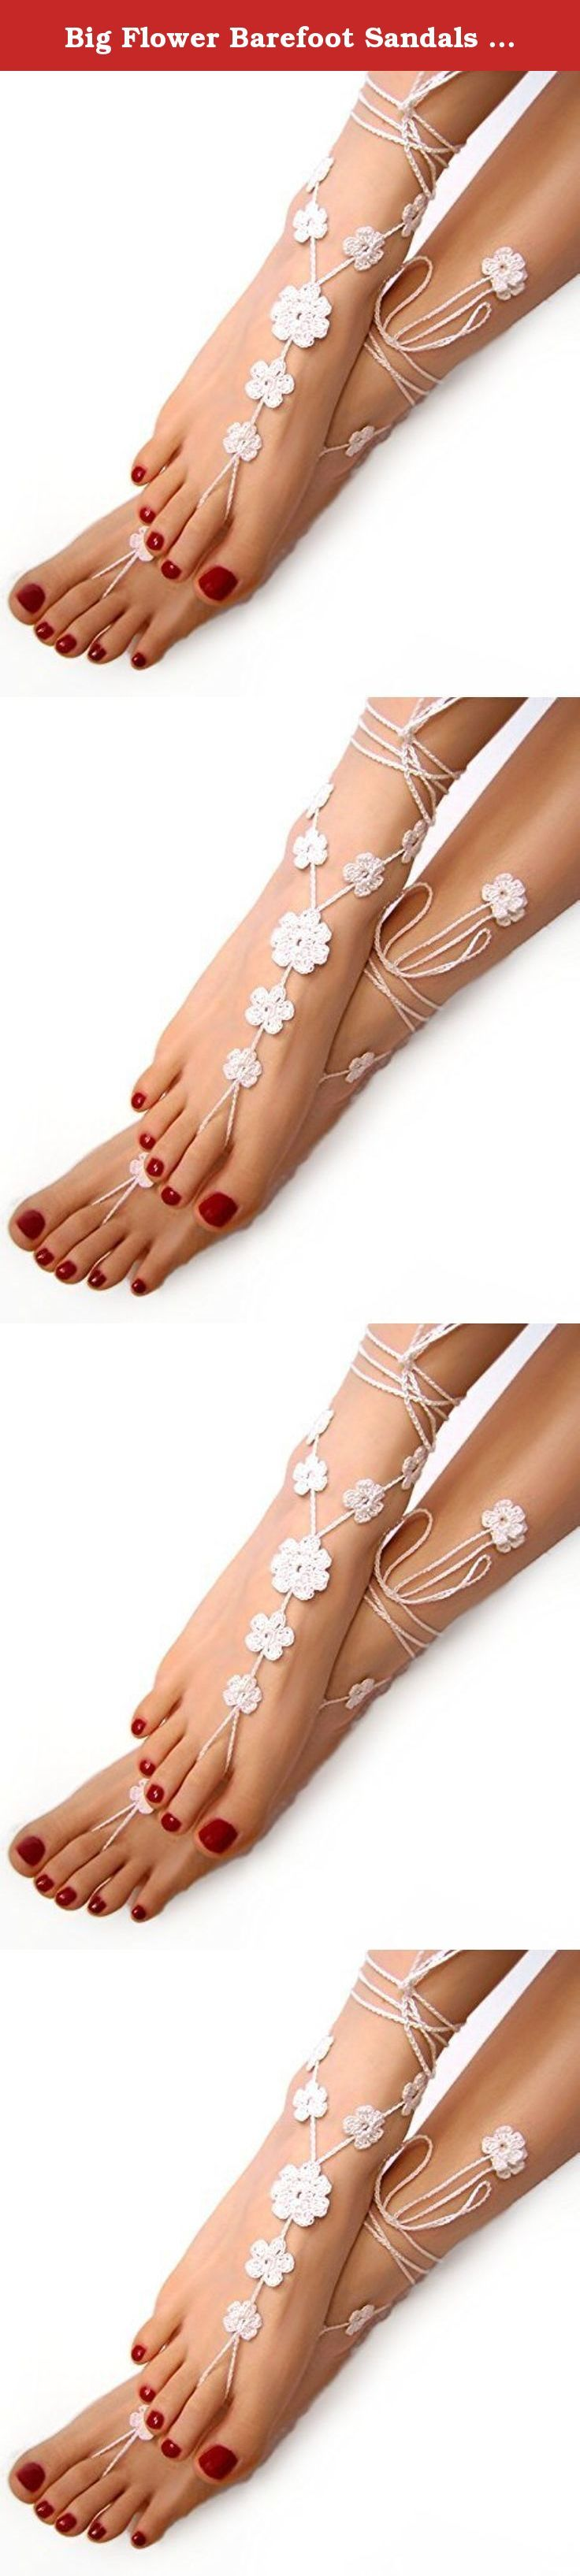 Big Flower Barefoot Sandals in White, Beach Wedding Foot Jewelry. Sexy White flower barefoot sandals, so hot and so sophisticated. Hand made of very thin mercerized cotton. Strings ended with flowers too. You have to have this beautiful foot jewelry!! Crochet with 100% thin mercerized cotton in snow white, very delicate and comfortable. One size fits all GIFT PACKING included. Ivory sandals available also with Amazon Prime. Other colors available in the shop will be sent from Poland. This...